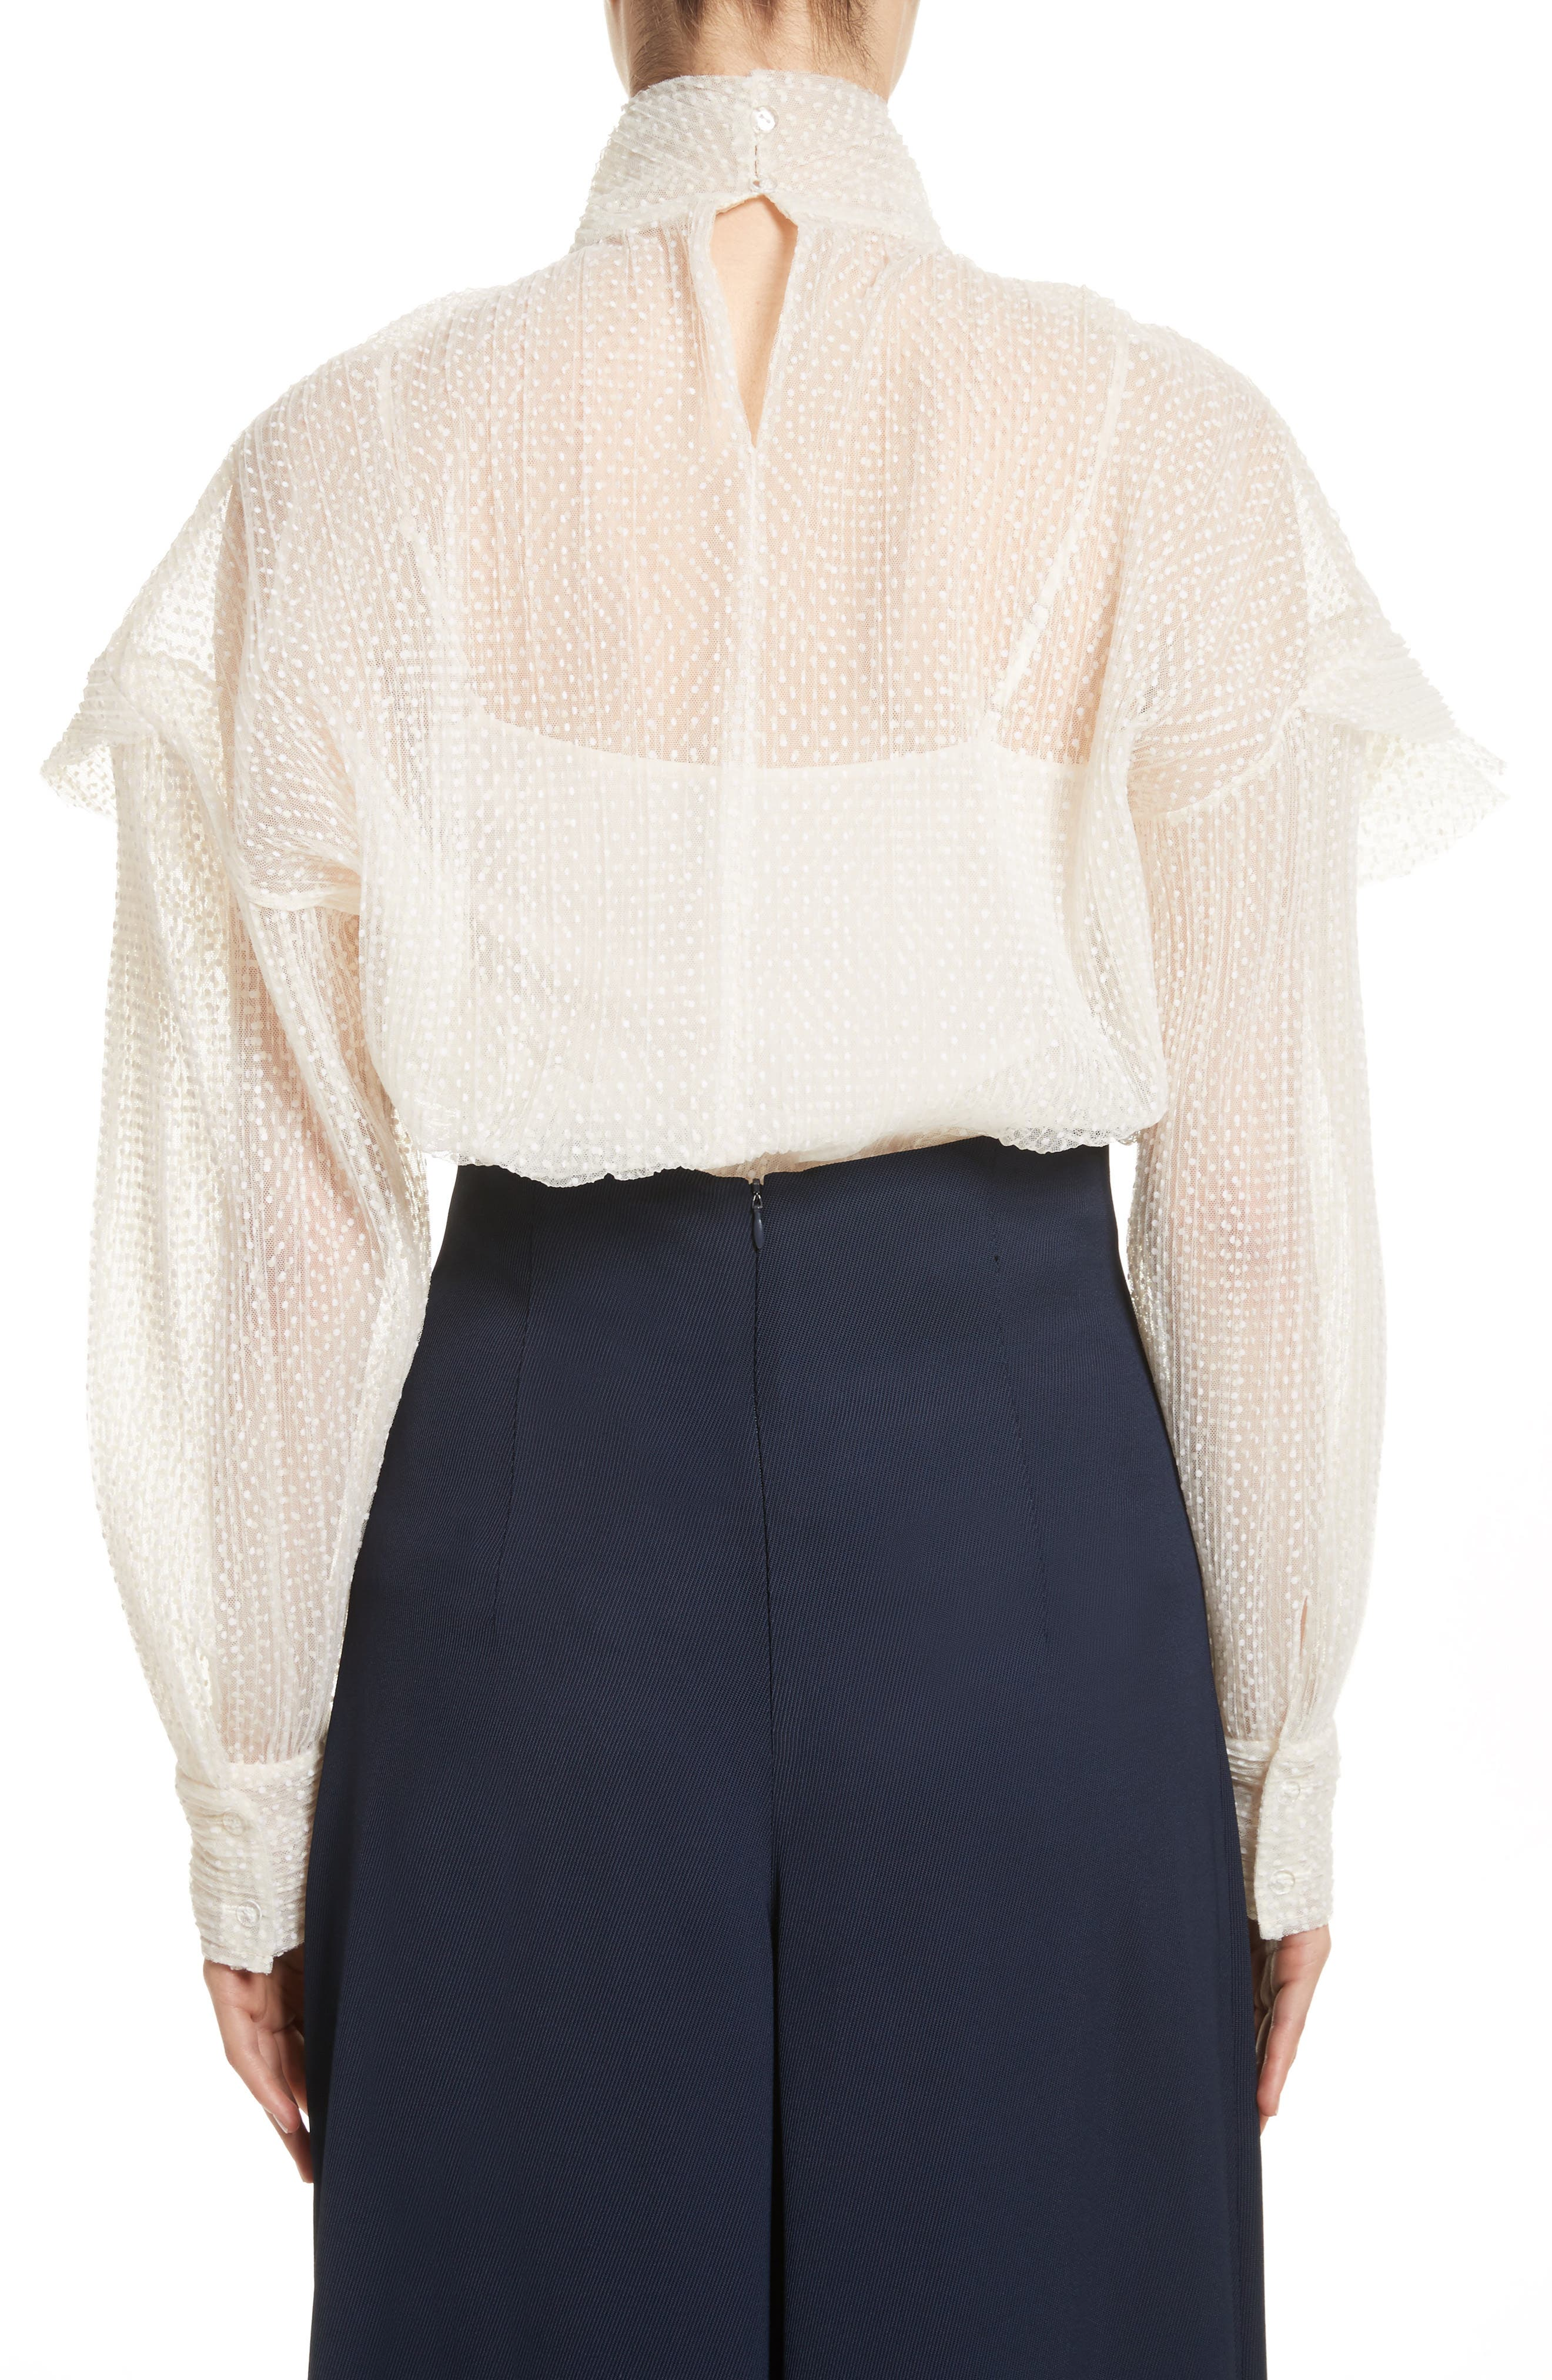 A.W.A.K.E Frill Double Layered Tulle Top,                             Alternate thumbnail 2, color,